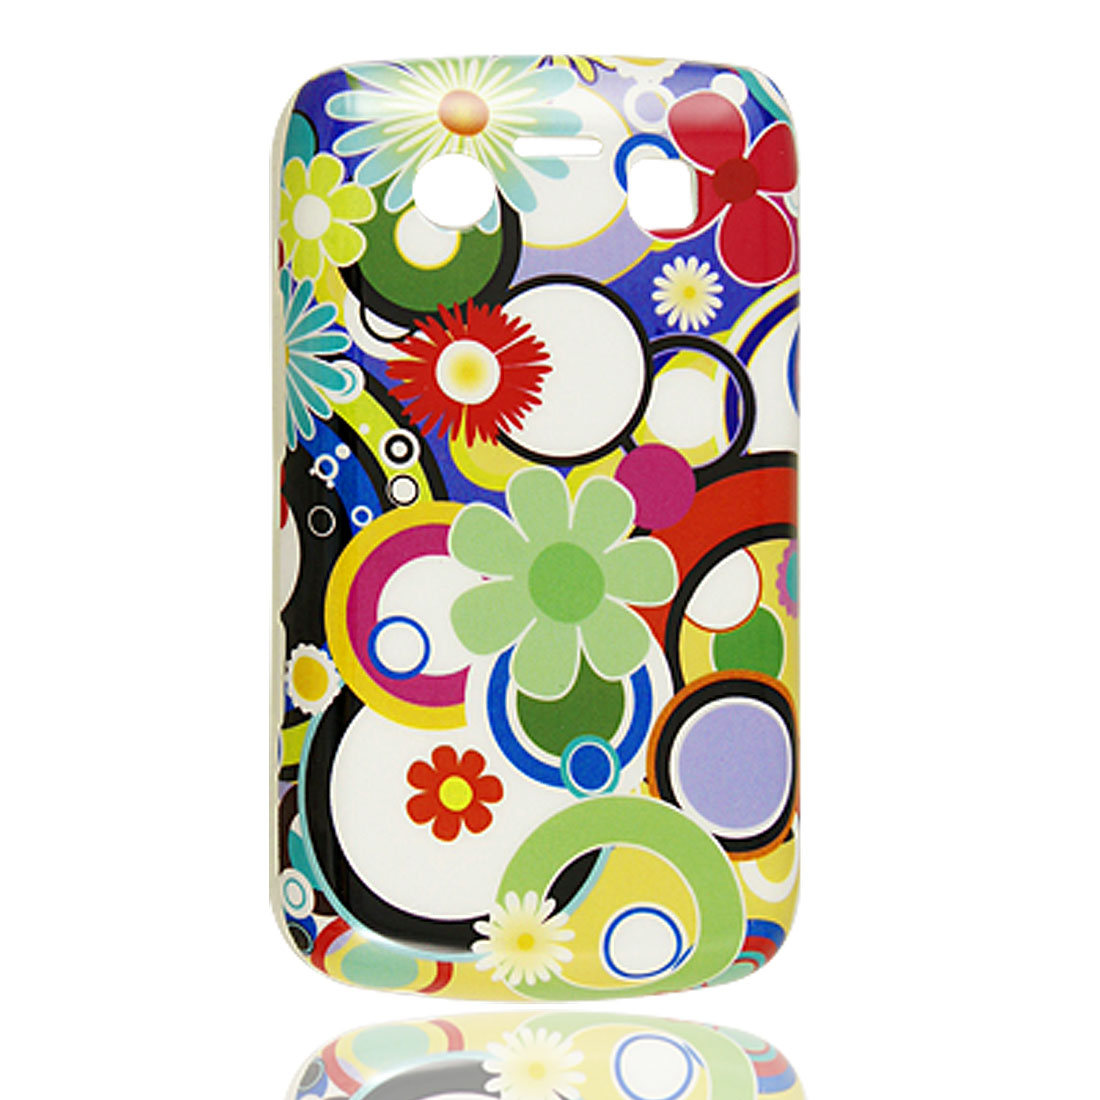 IMD Colorful Flower Printed Hard Plastic Case for Blackberry 9700 9020